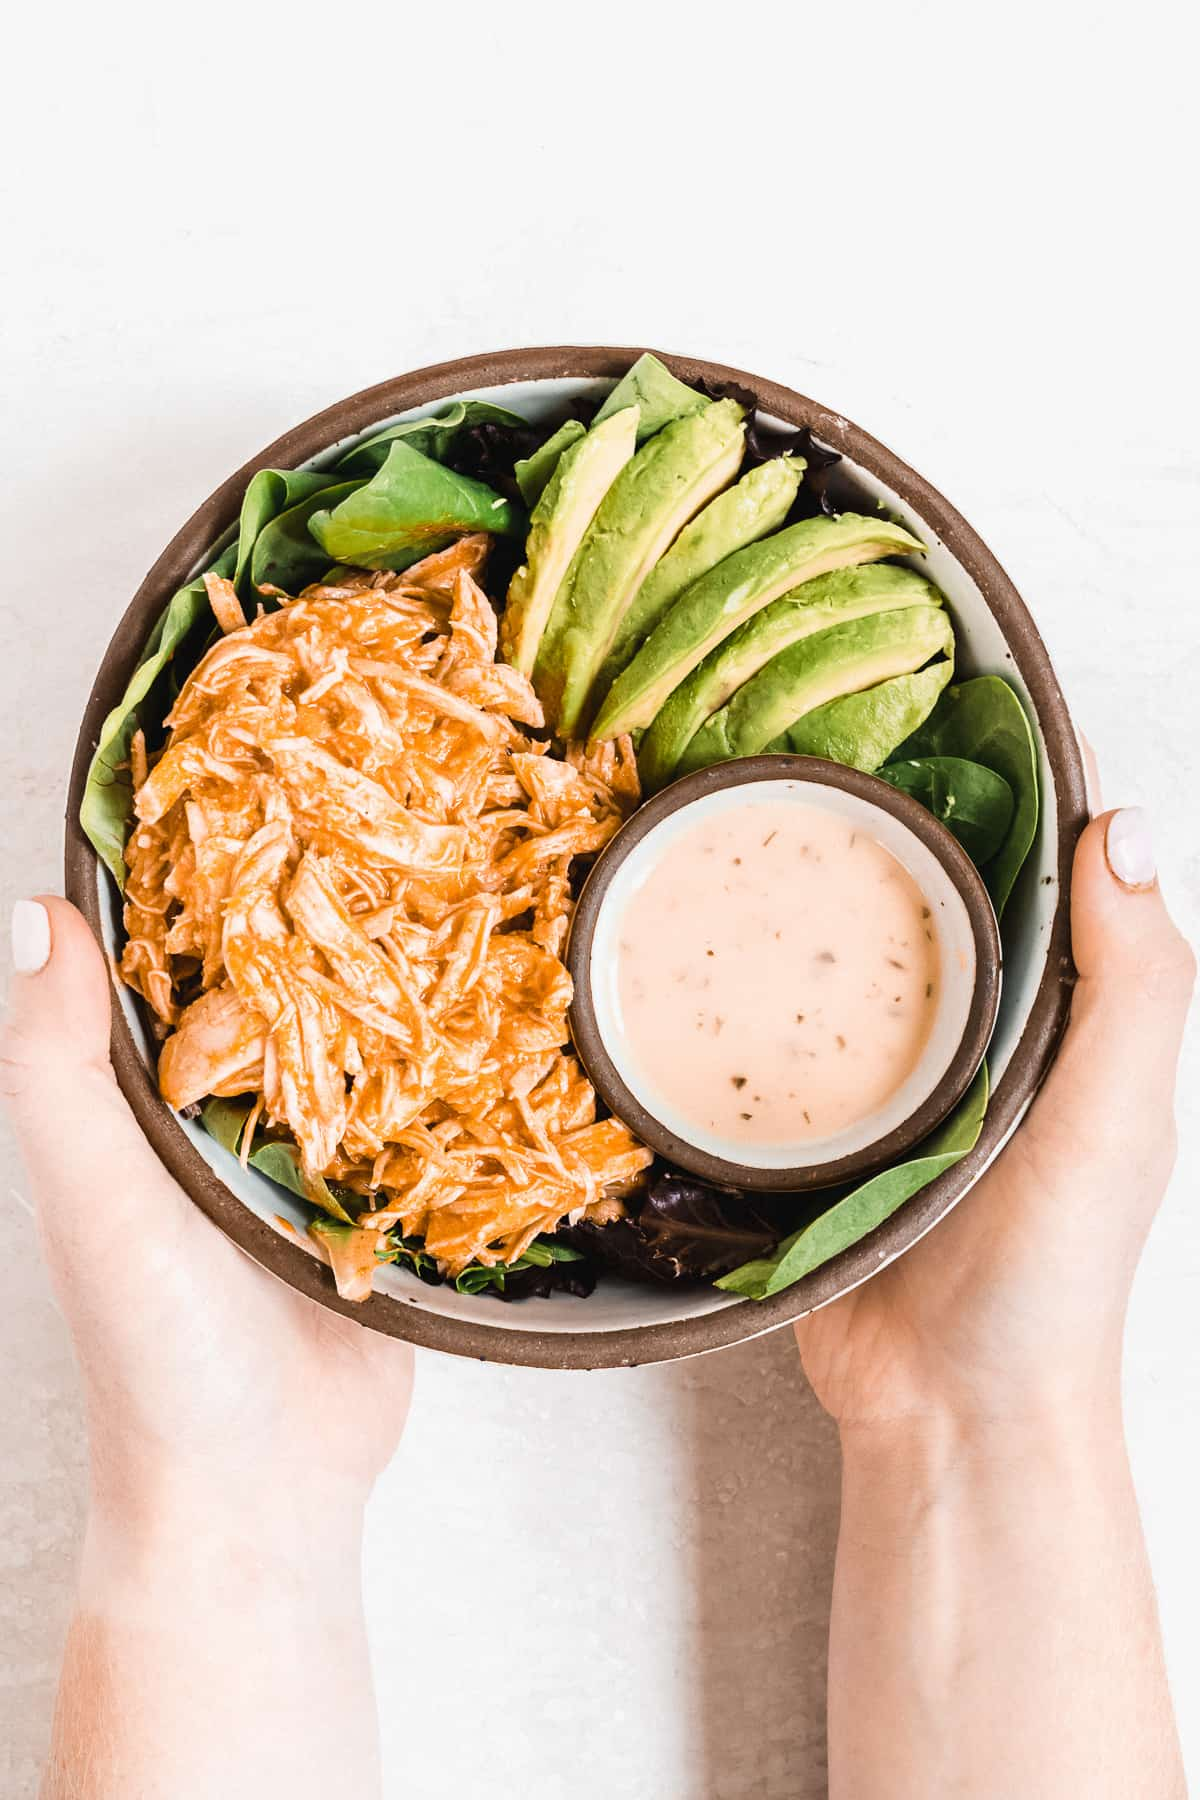 Two hands holding bowl full of buffalo chicken, avocado slices, and dressing.